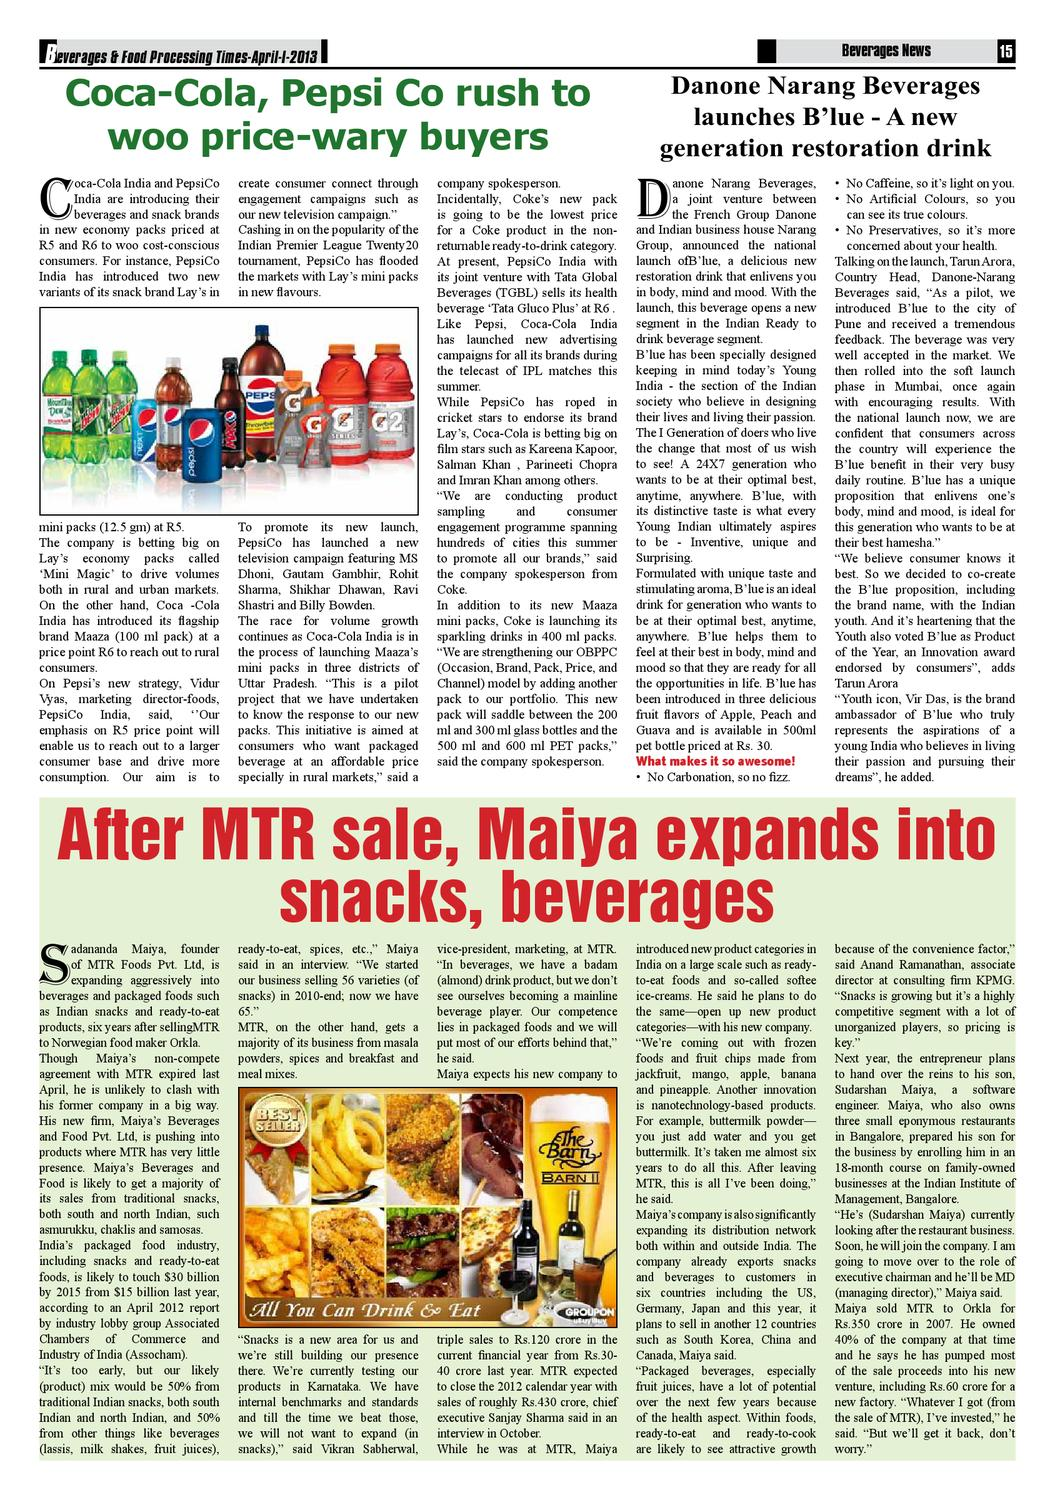 Beverages & Food Processing Times Apr'13 (I) by Advance Info